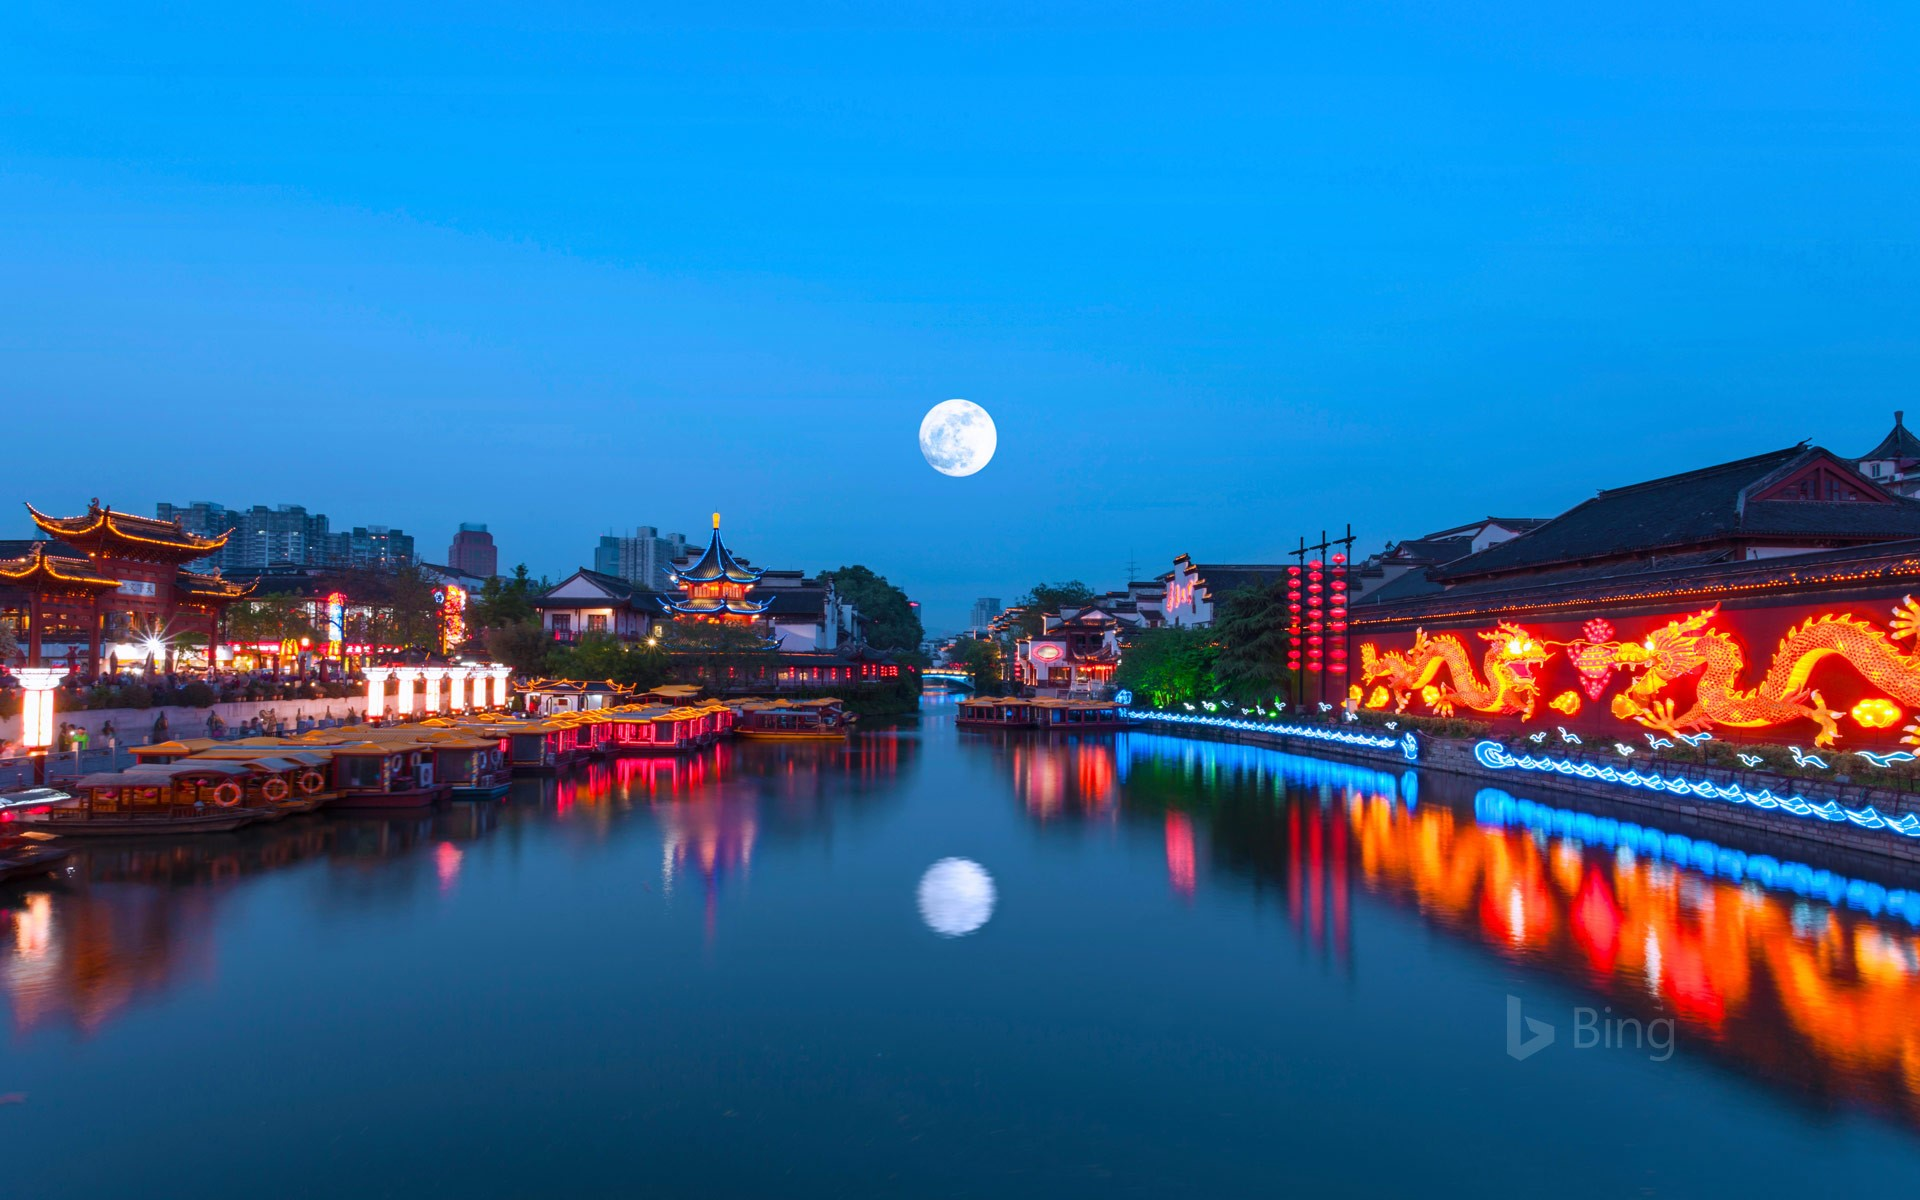 The Qinhuai River in Nanjing, China, during the Mid-Autumn Festival